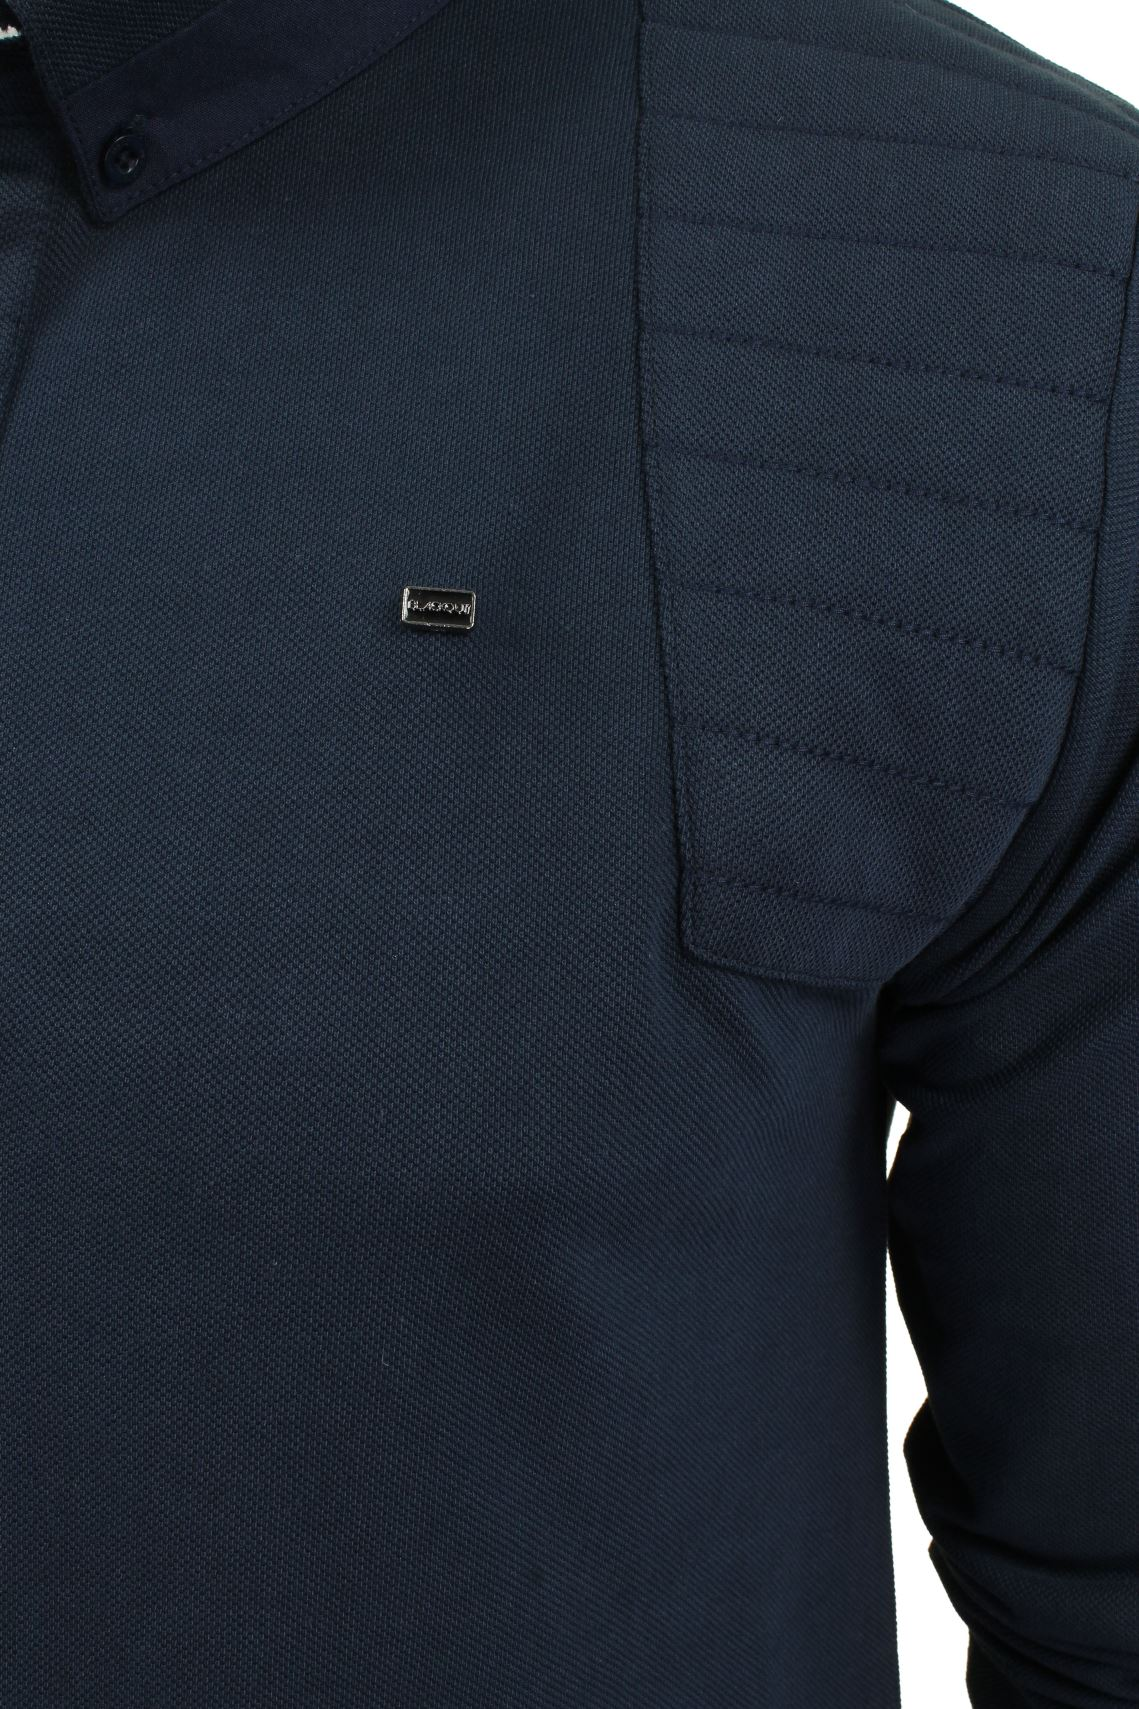 Mens-Short-Sleeved-Polo-Shirt-from-the-Blackout-Collection-by-Voi-Jeans thumbnail 3